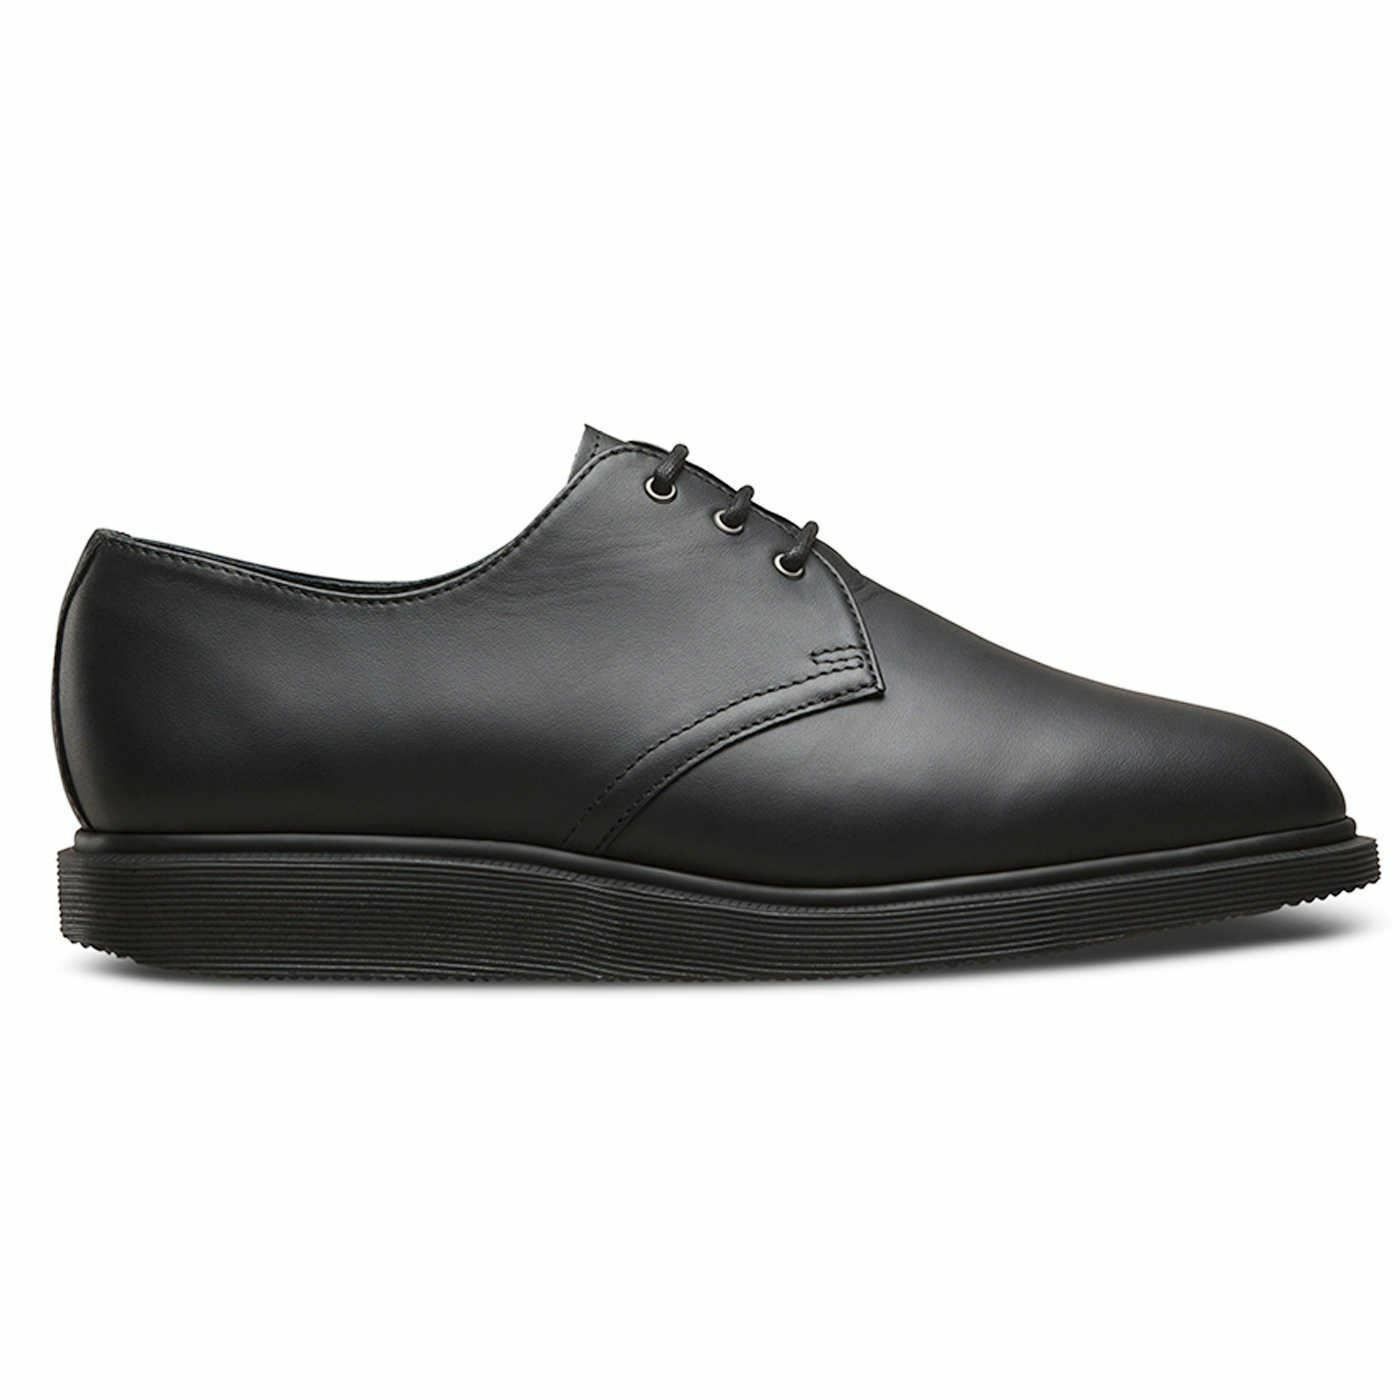 Dr.Martens 1461 3 Eyelet Torriano Black Womens - Mens Shoes Eeyelets